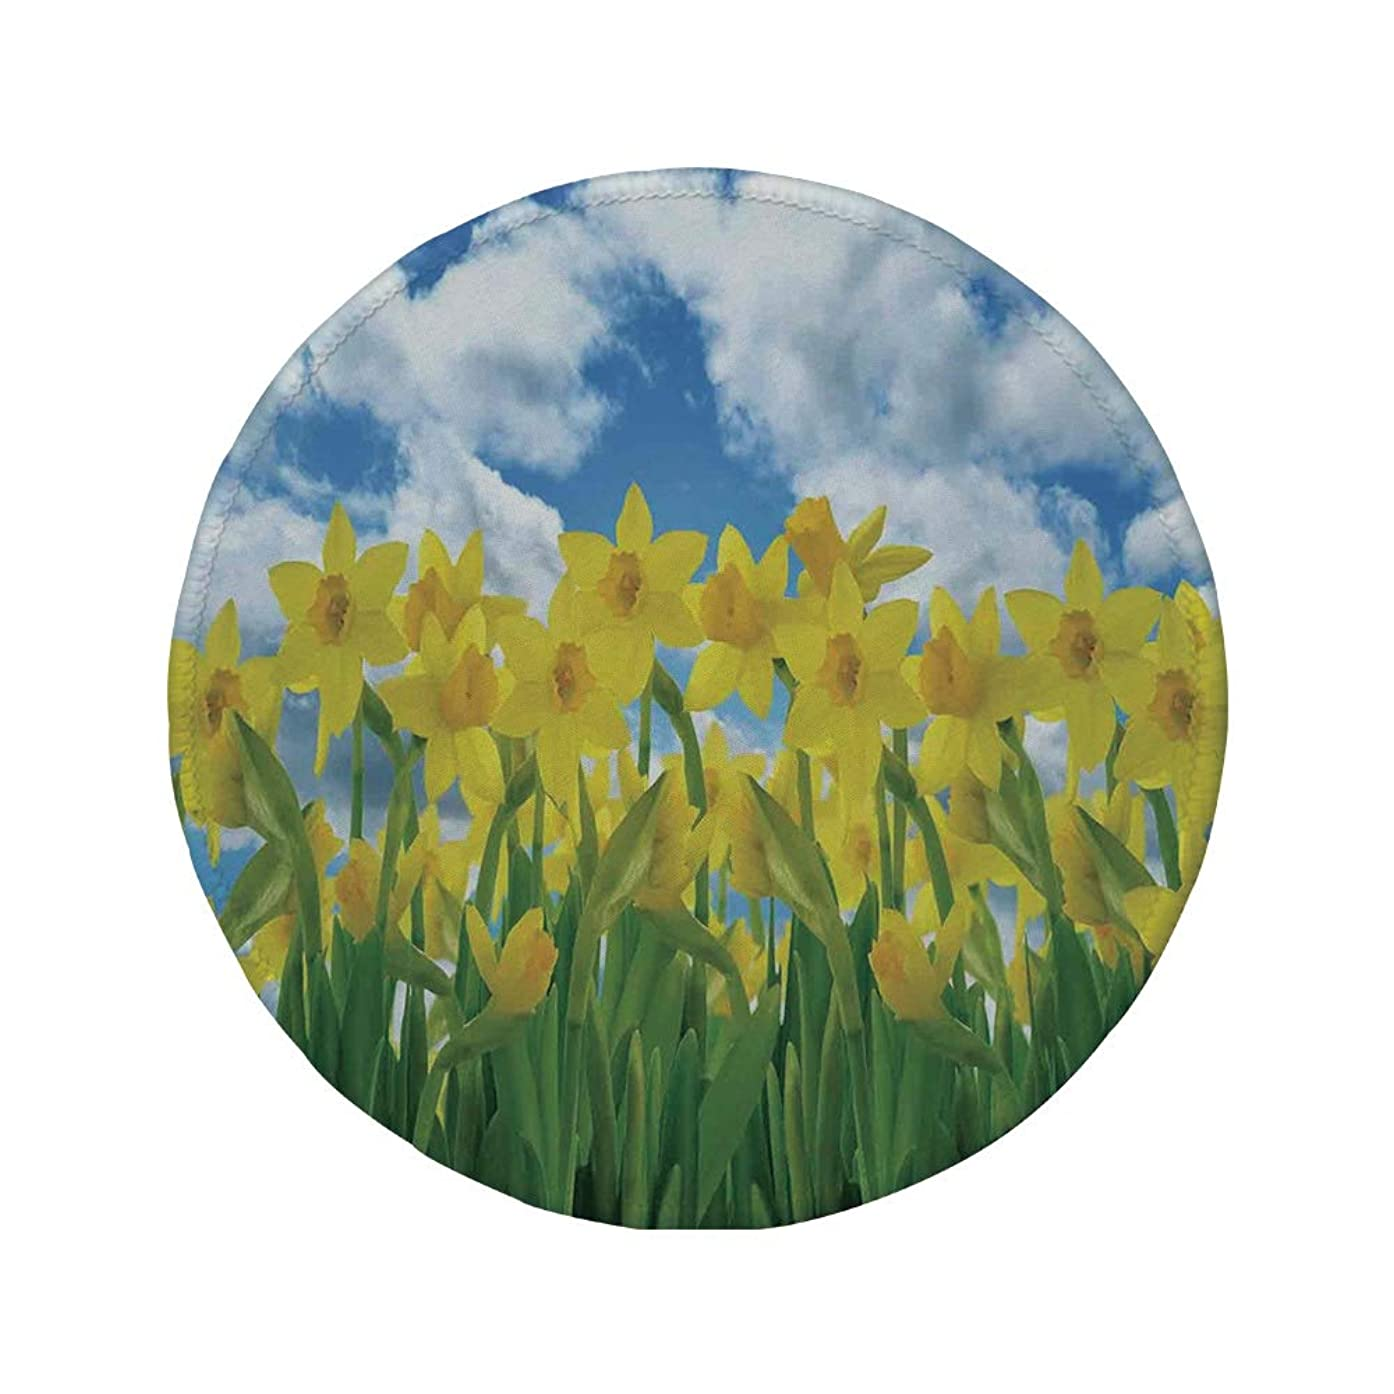 Non-Slip Rubber Round Mouse Pad,Daffodil Decor,A Field of Daffodil Flowers Blooms Against Summer Sky Cloudscape Picture Print,Yellow Green Blue,7.87